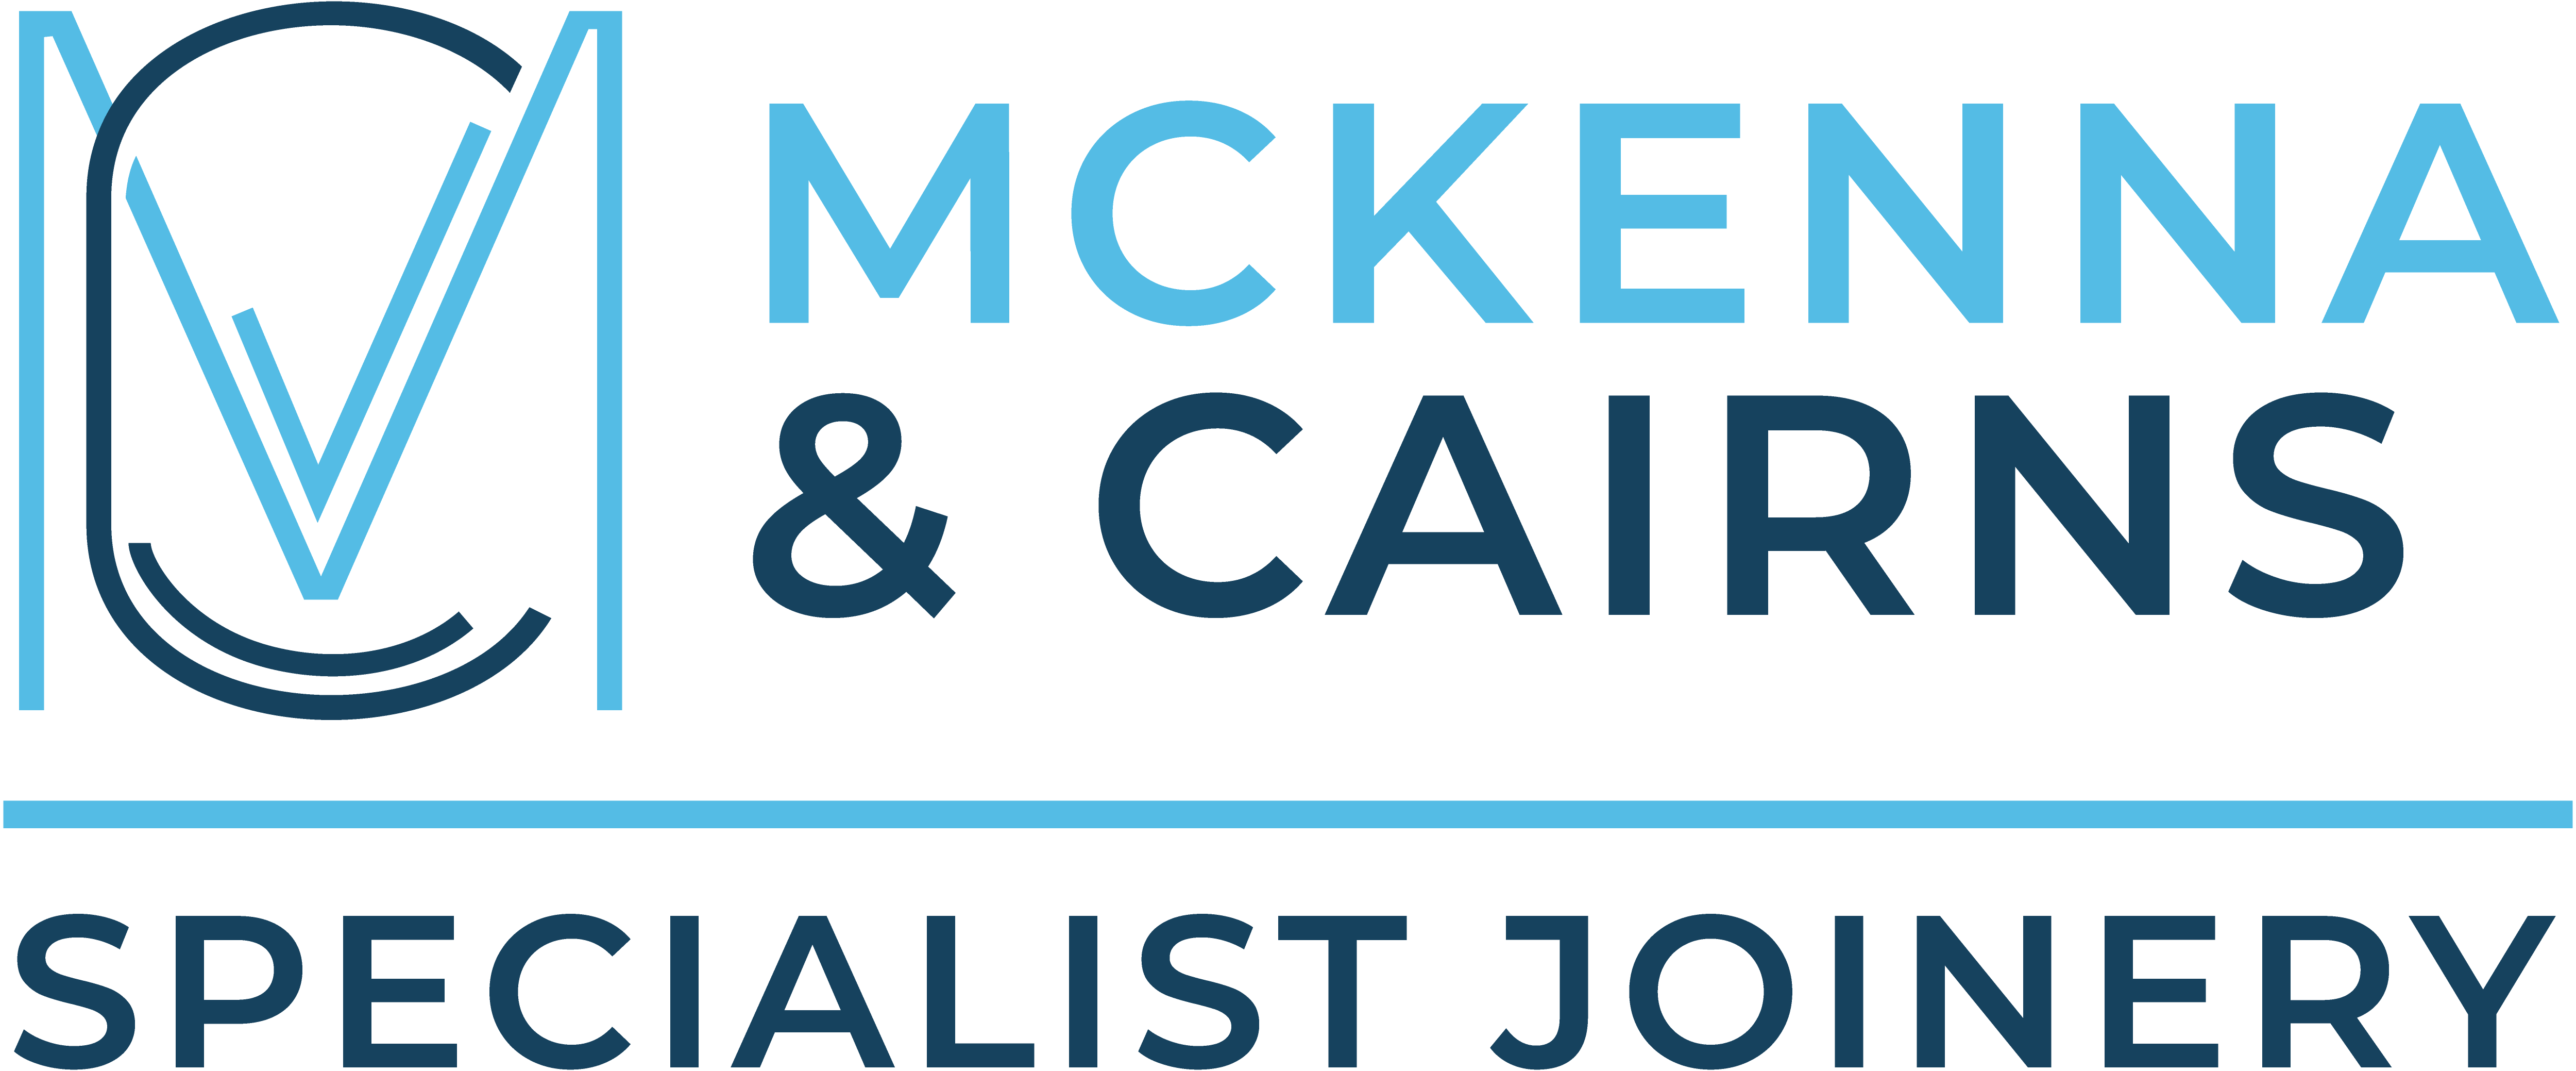 McKenna & Cairns New Website